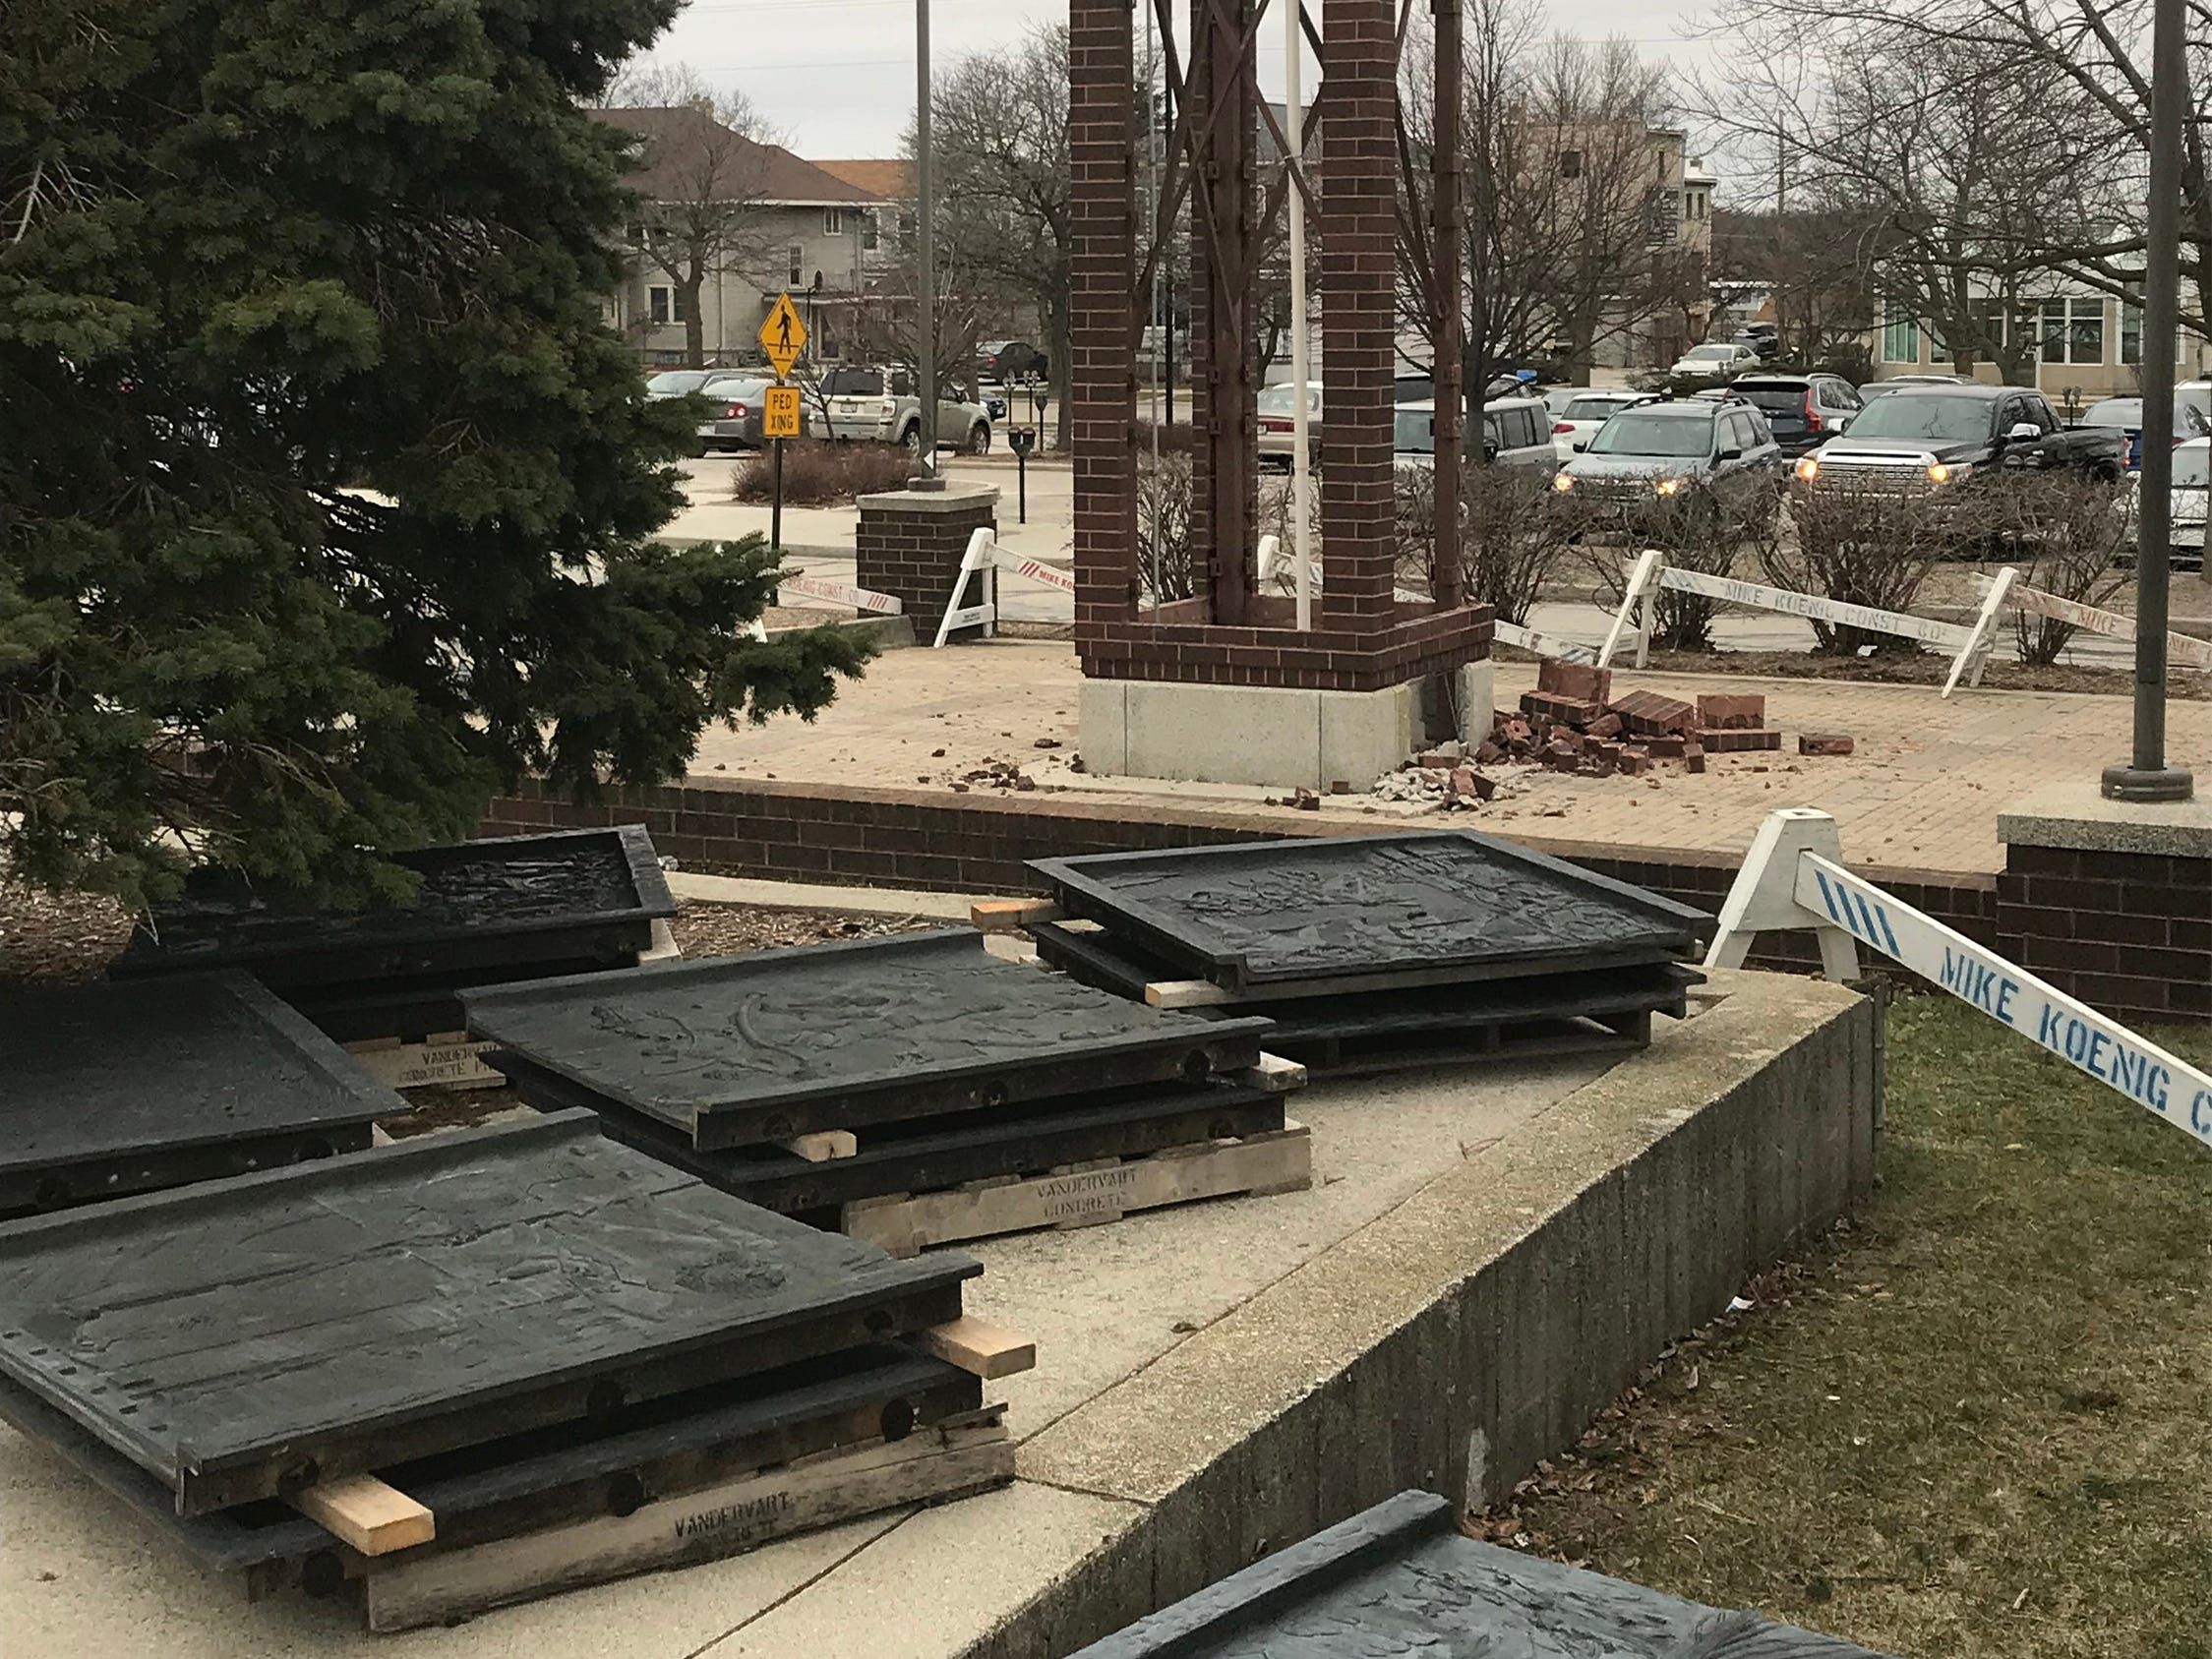 Panels that weigh 800-pounds each await storage following their removal from clock tower at Mead Public Library, Wednesday April 10, 2019, in Sheboygan, Wis. The city is repurposing the cast panels for an 8th Street display as part of a renovations project.